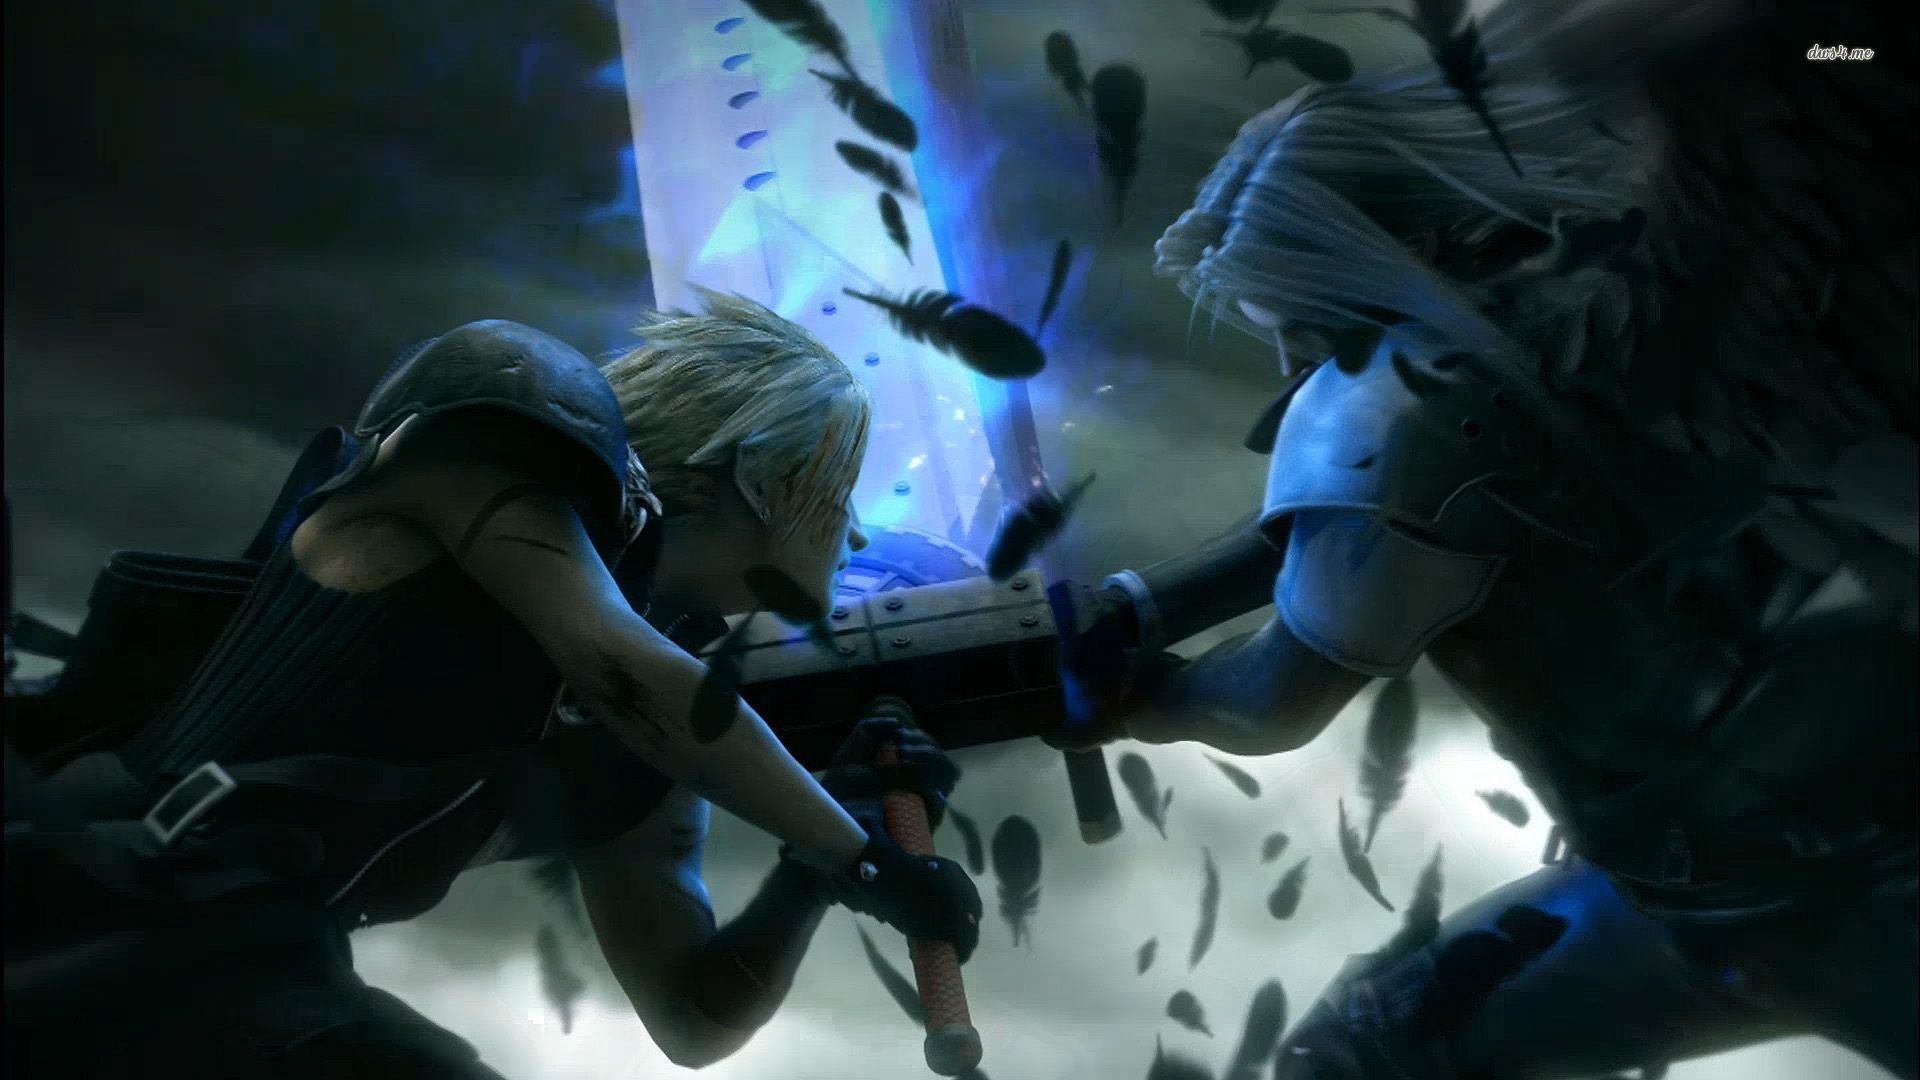 89 final fantasy vii advent children hd wallpapers backgrounds - Final Fantasy Vii Advent Children Wallpaper 1280x800 Final Fantasy